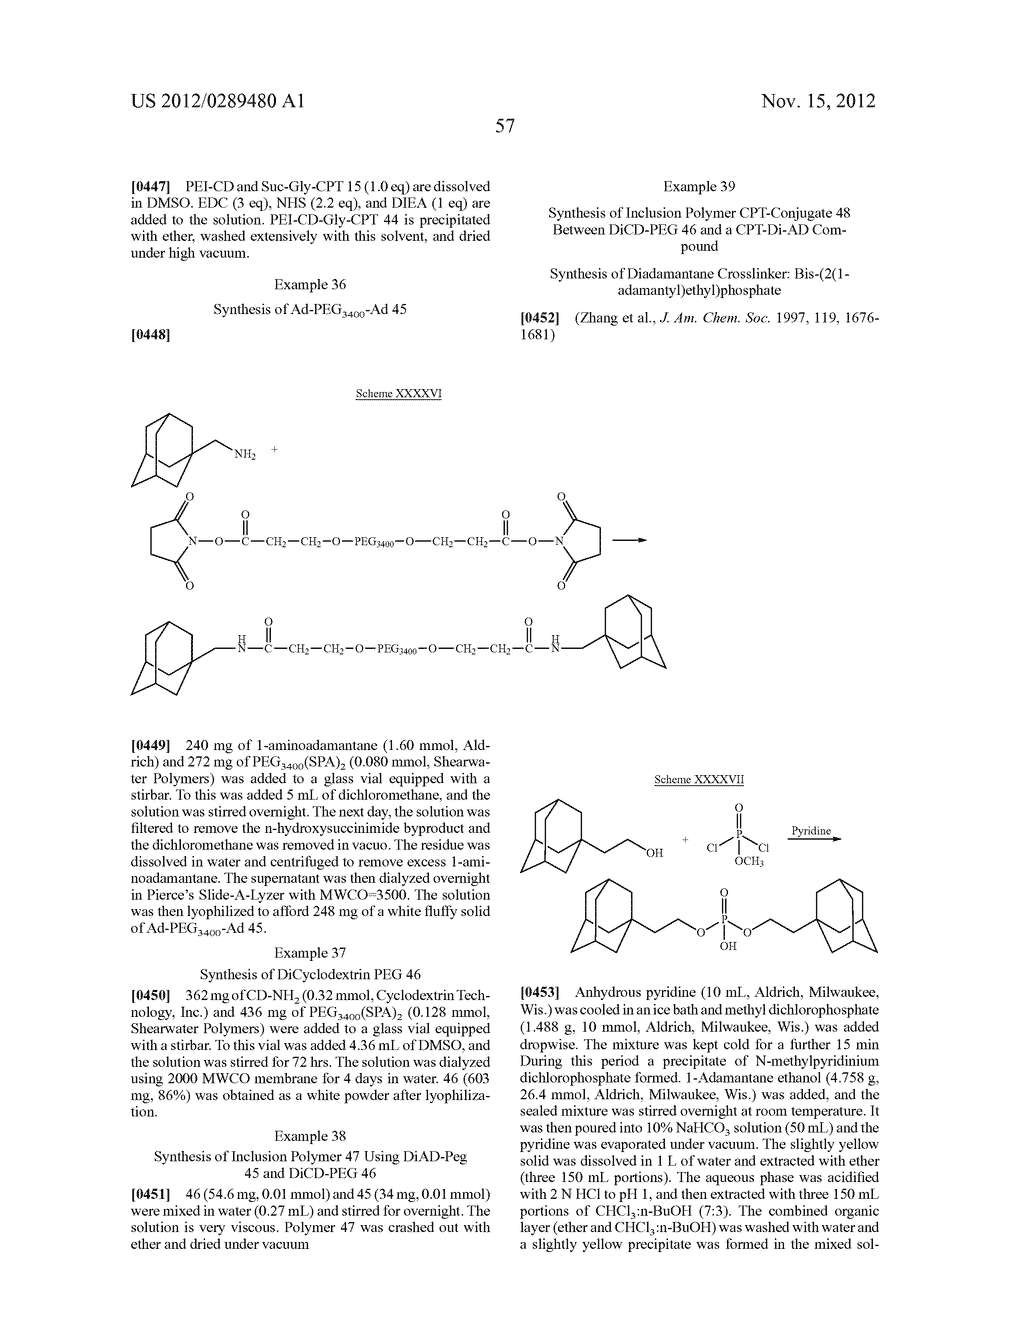 CYCLODEXTRIN-BASED POLYMERS FOR THERAPEUTICS DELIVERY - diagram, schematic, and image 69